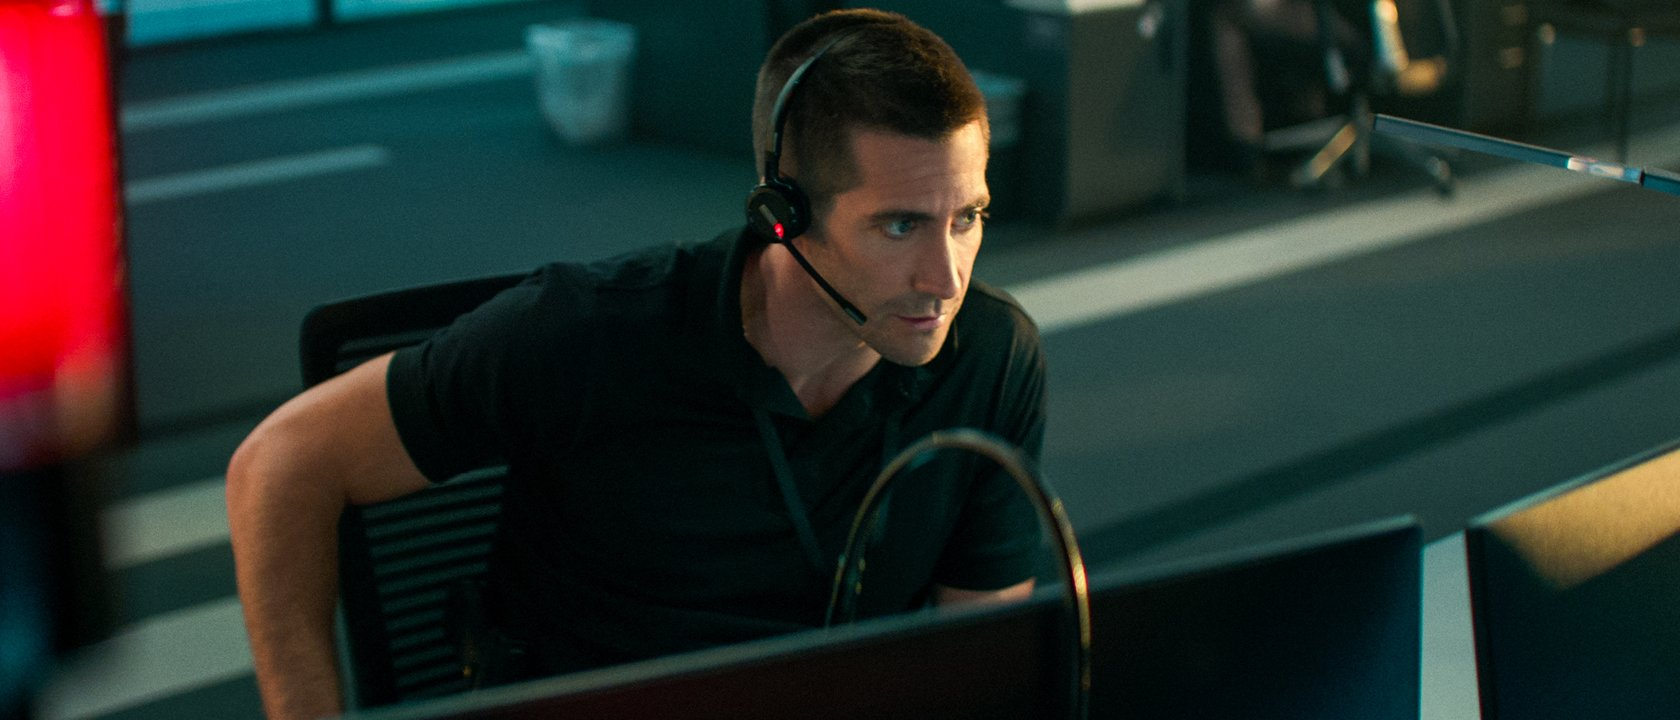 Netflix's The Guilty Review: Jake Gyllenhaal, Jake Gyllenhaal, Jake Gyllenhaal, Jake Gyllenhaal